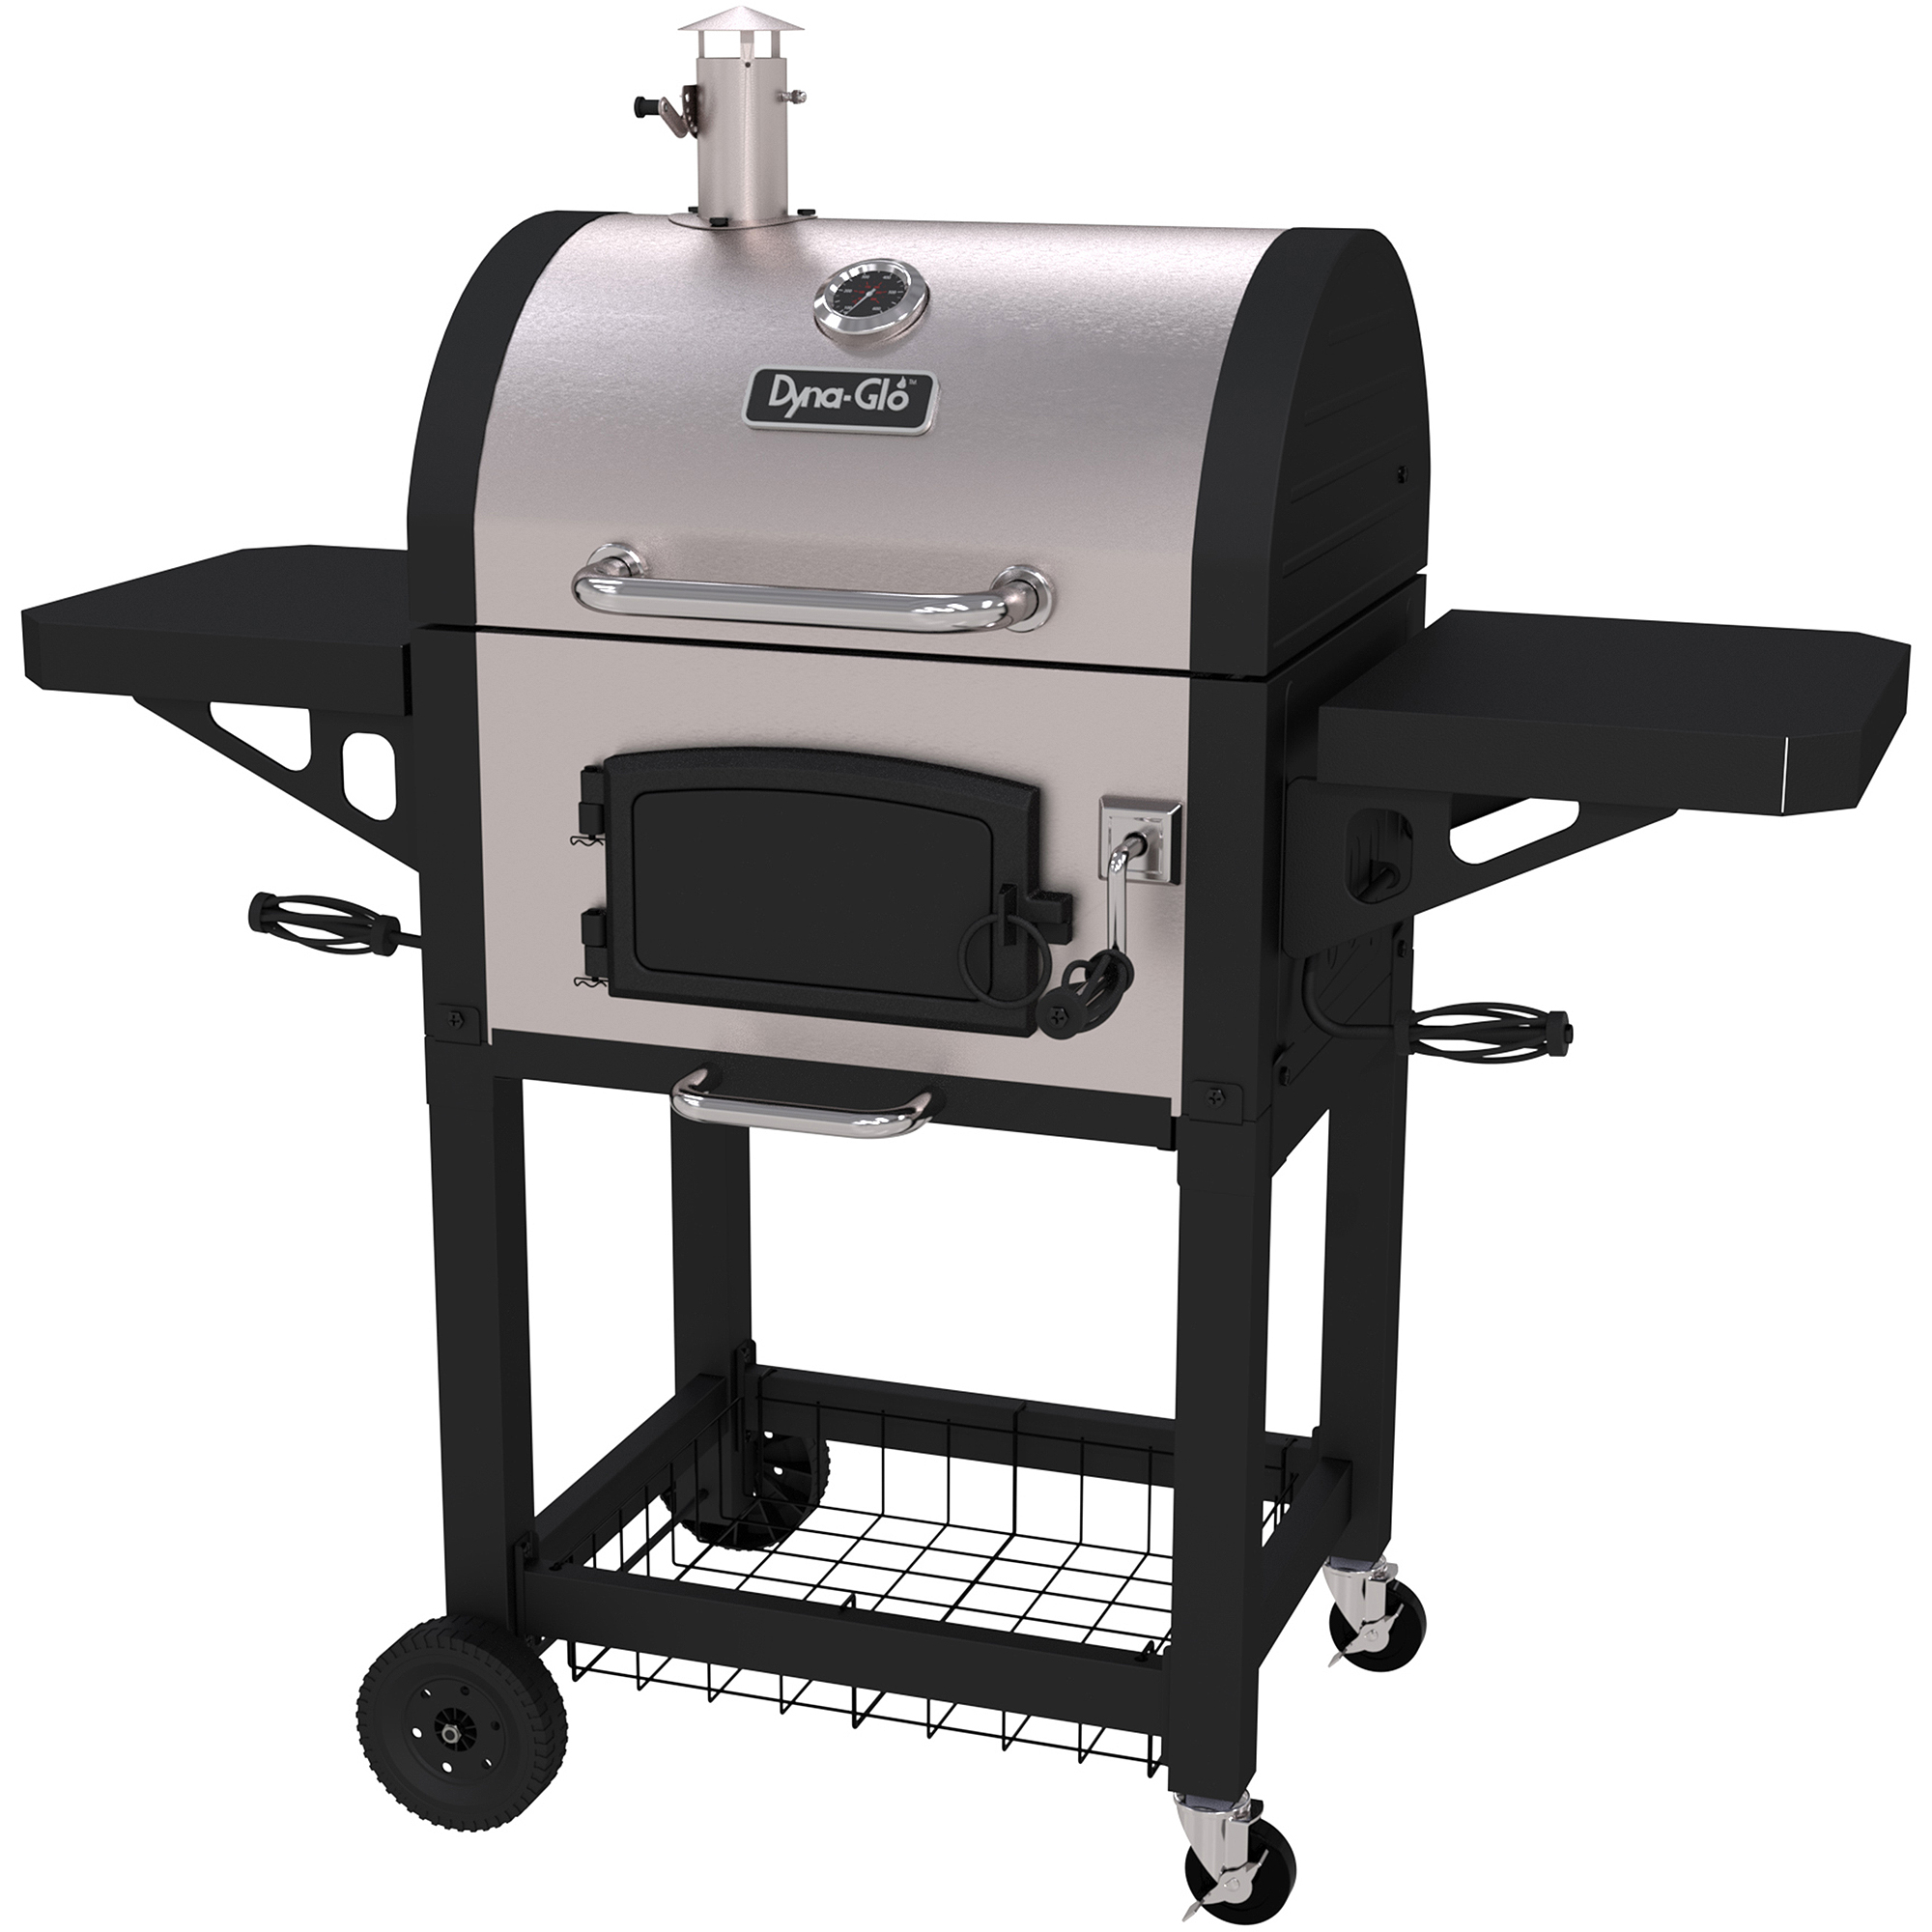 Dyna-Glo DGN405SNC-D Stainless Heavy-Duty Charcoal Grill by Charcoal Grills